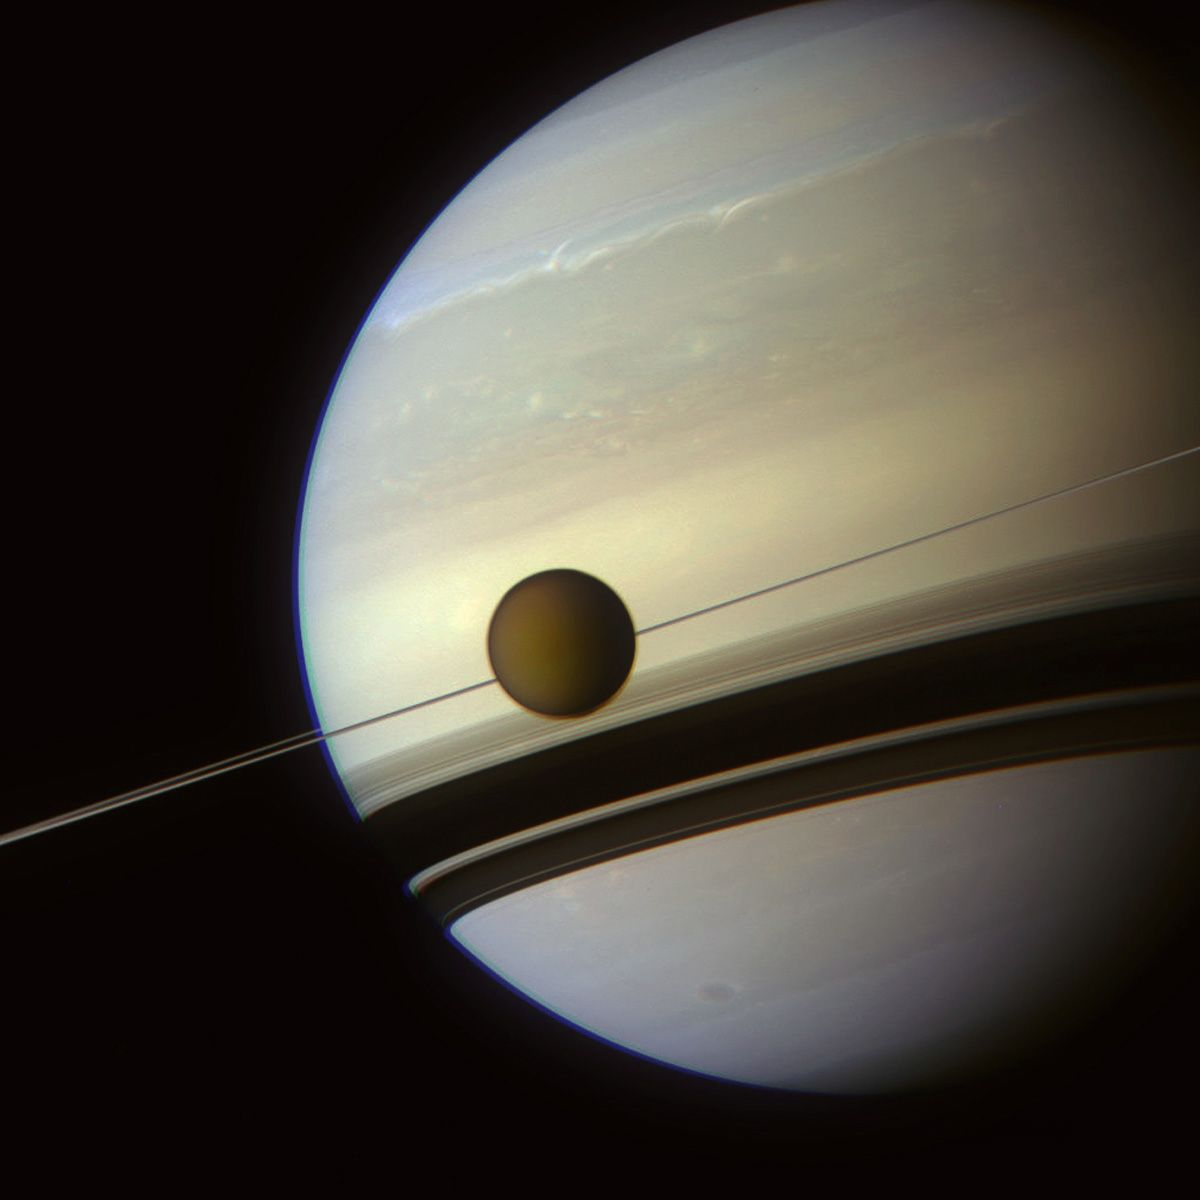 Spacecraft Cassini Orbiting Saturn Has Recorded Yet Another